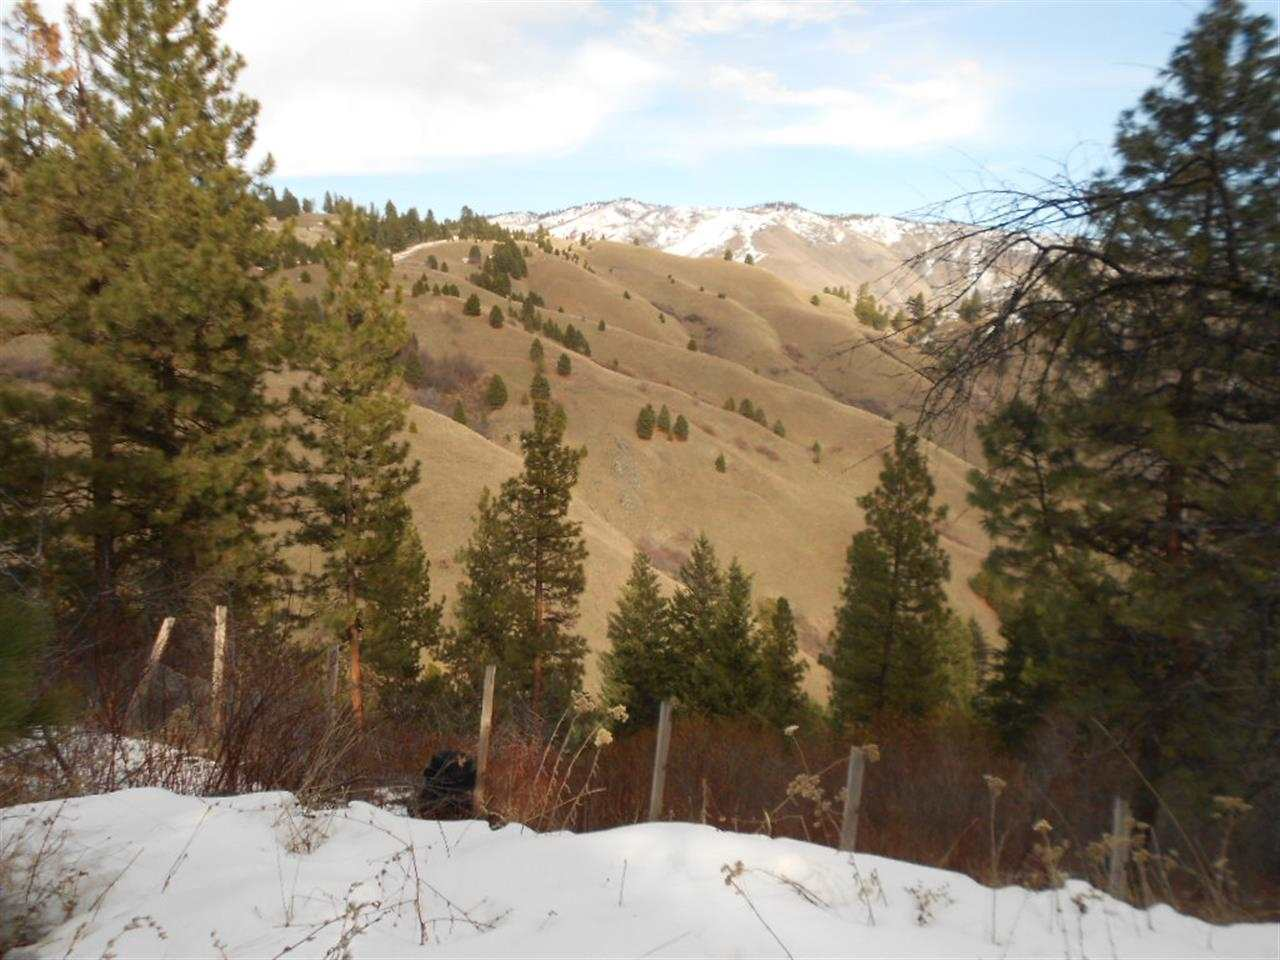 Terreno por un Venta en Tbd Phillips Creek Banks, Idaho 83622